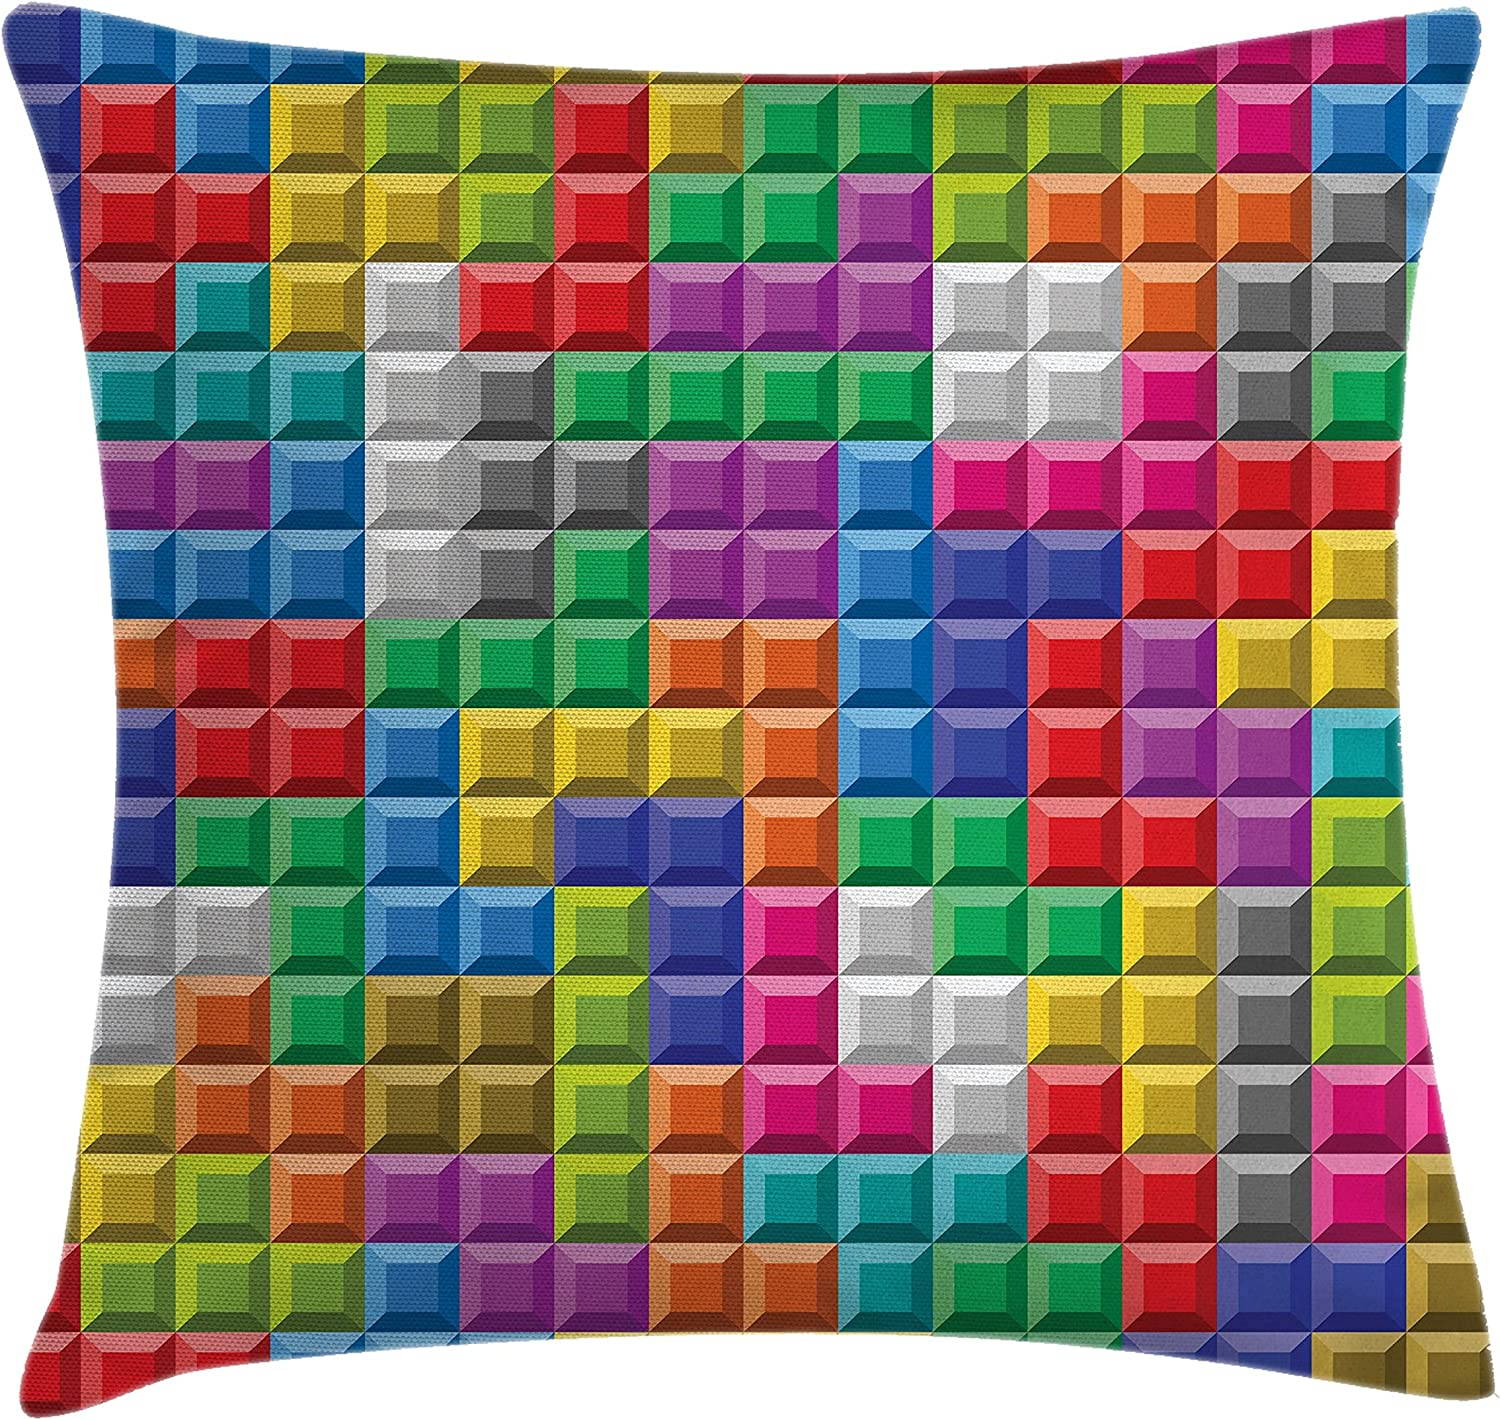 """Ambesonne Video Games Throw Pillow Cushion Cover, Colorful Retro Gaming Computer Brick Blocks Image Puzzle Digital 90's Play, Decorative Square Accent Pillow Case, 16"""" X 16"""", Multicolor"""